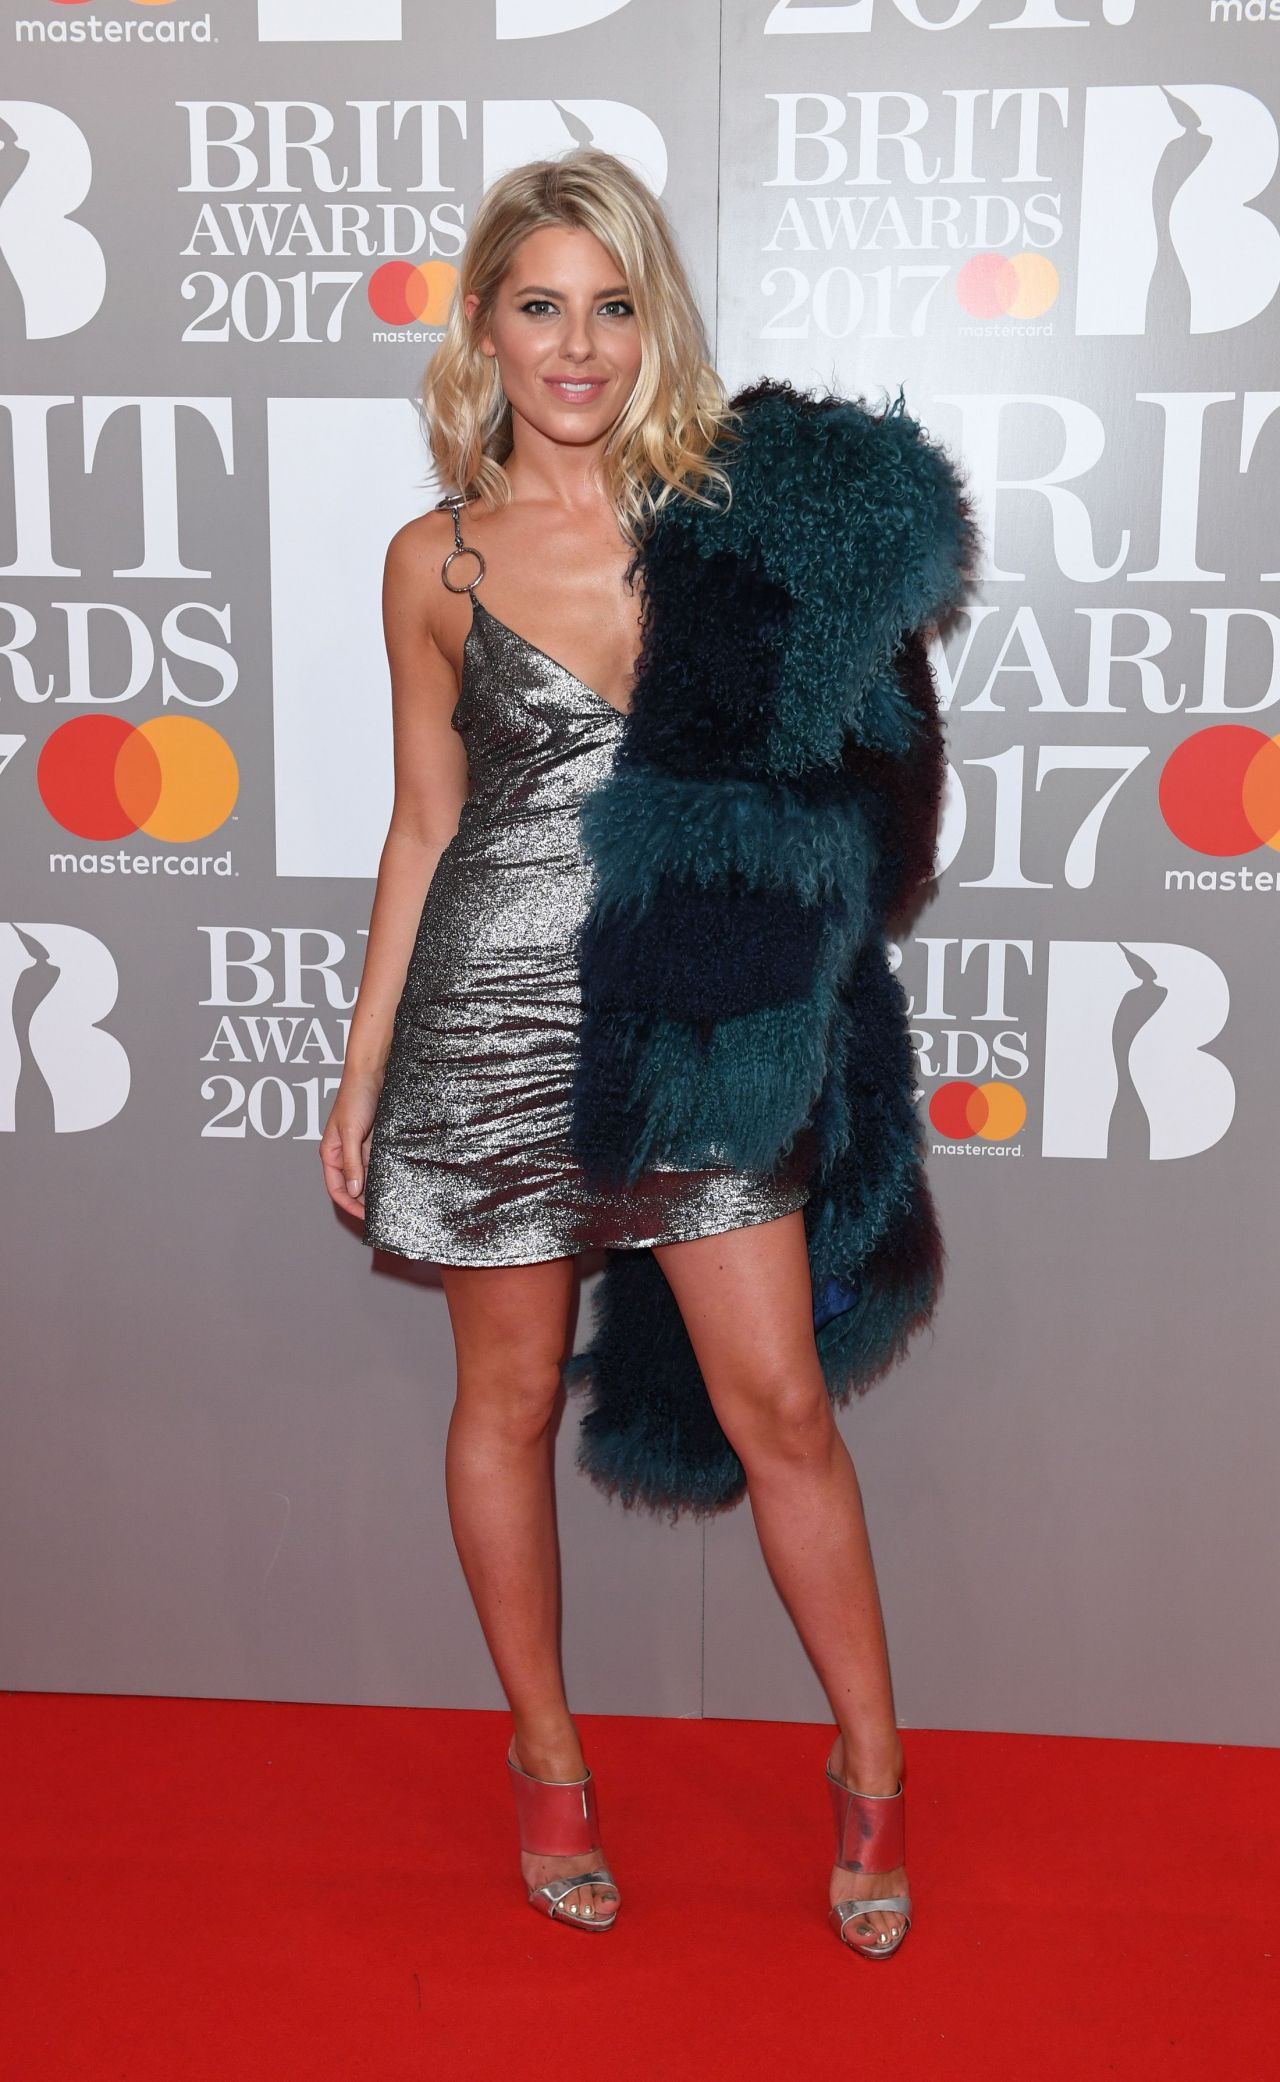 mollie-king-the-brit-awards-at-o2-arena-in-london-2-22-2017-3.jpg